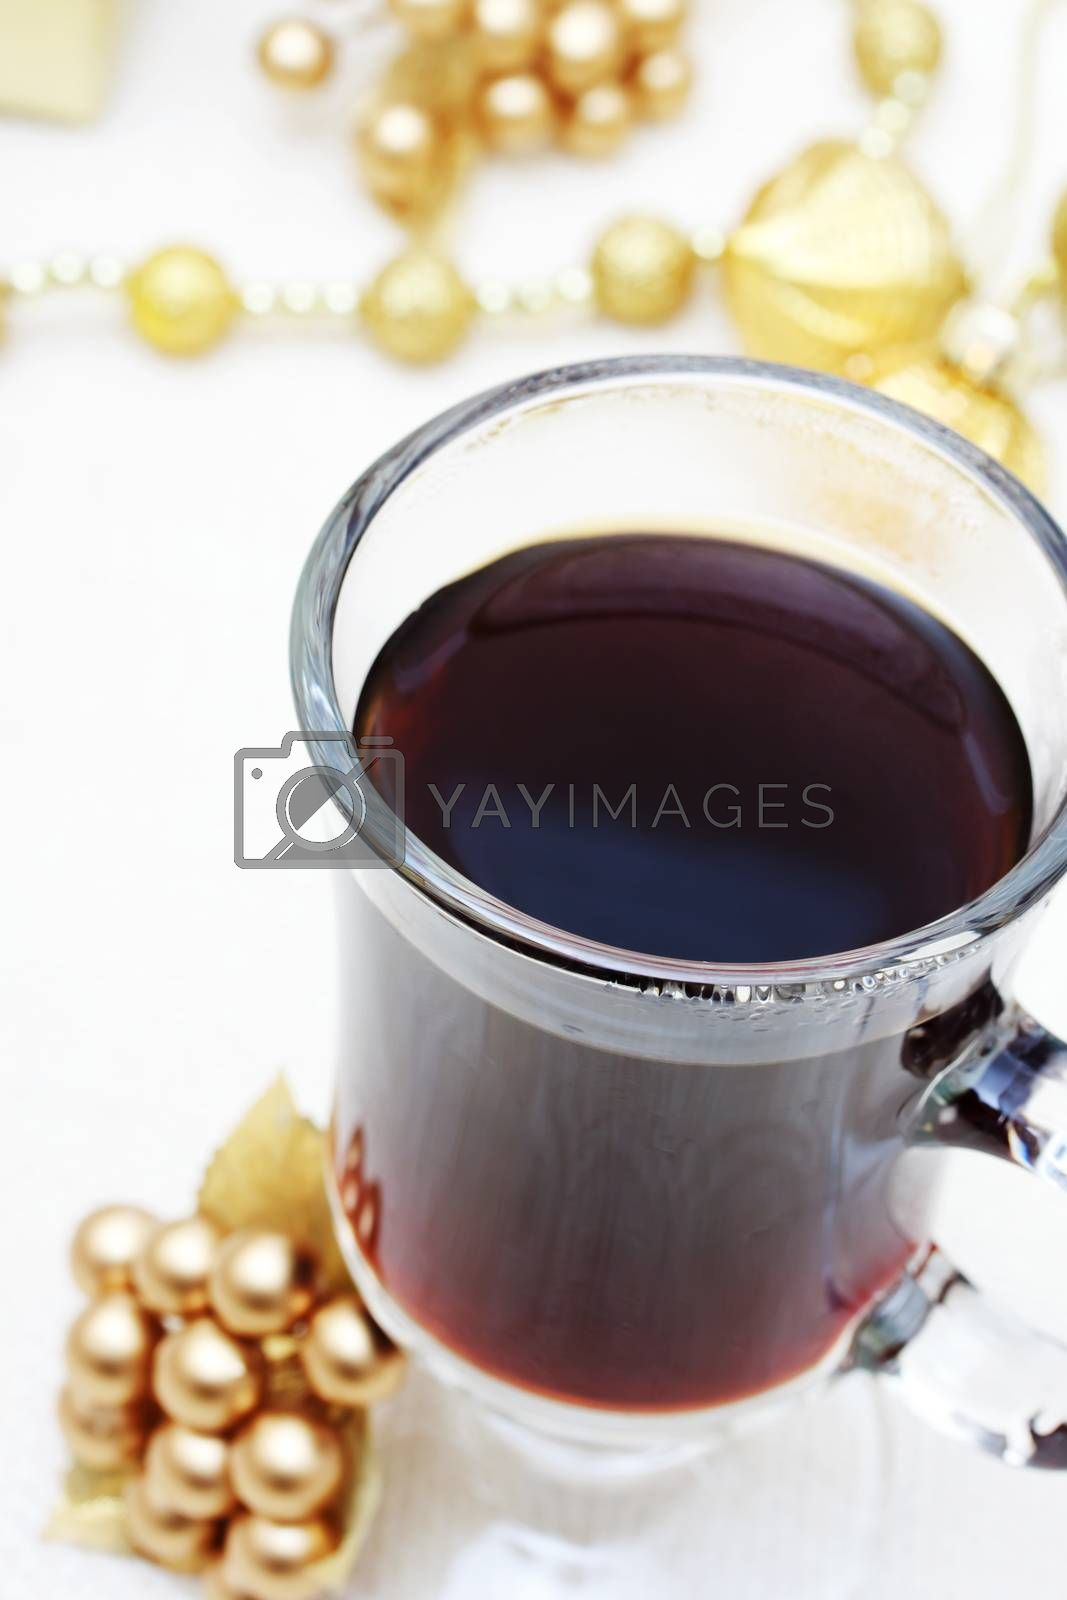 Royalty free image of Cup of Coffee with Christmas Ornaments by melpomene